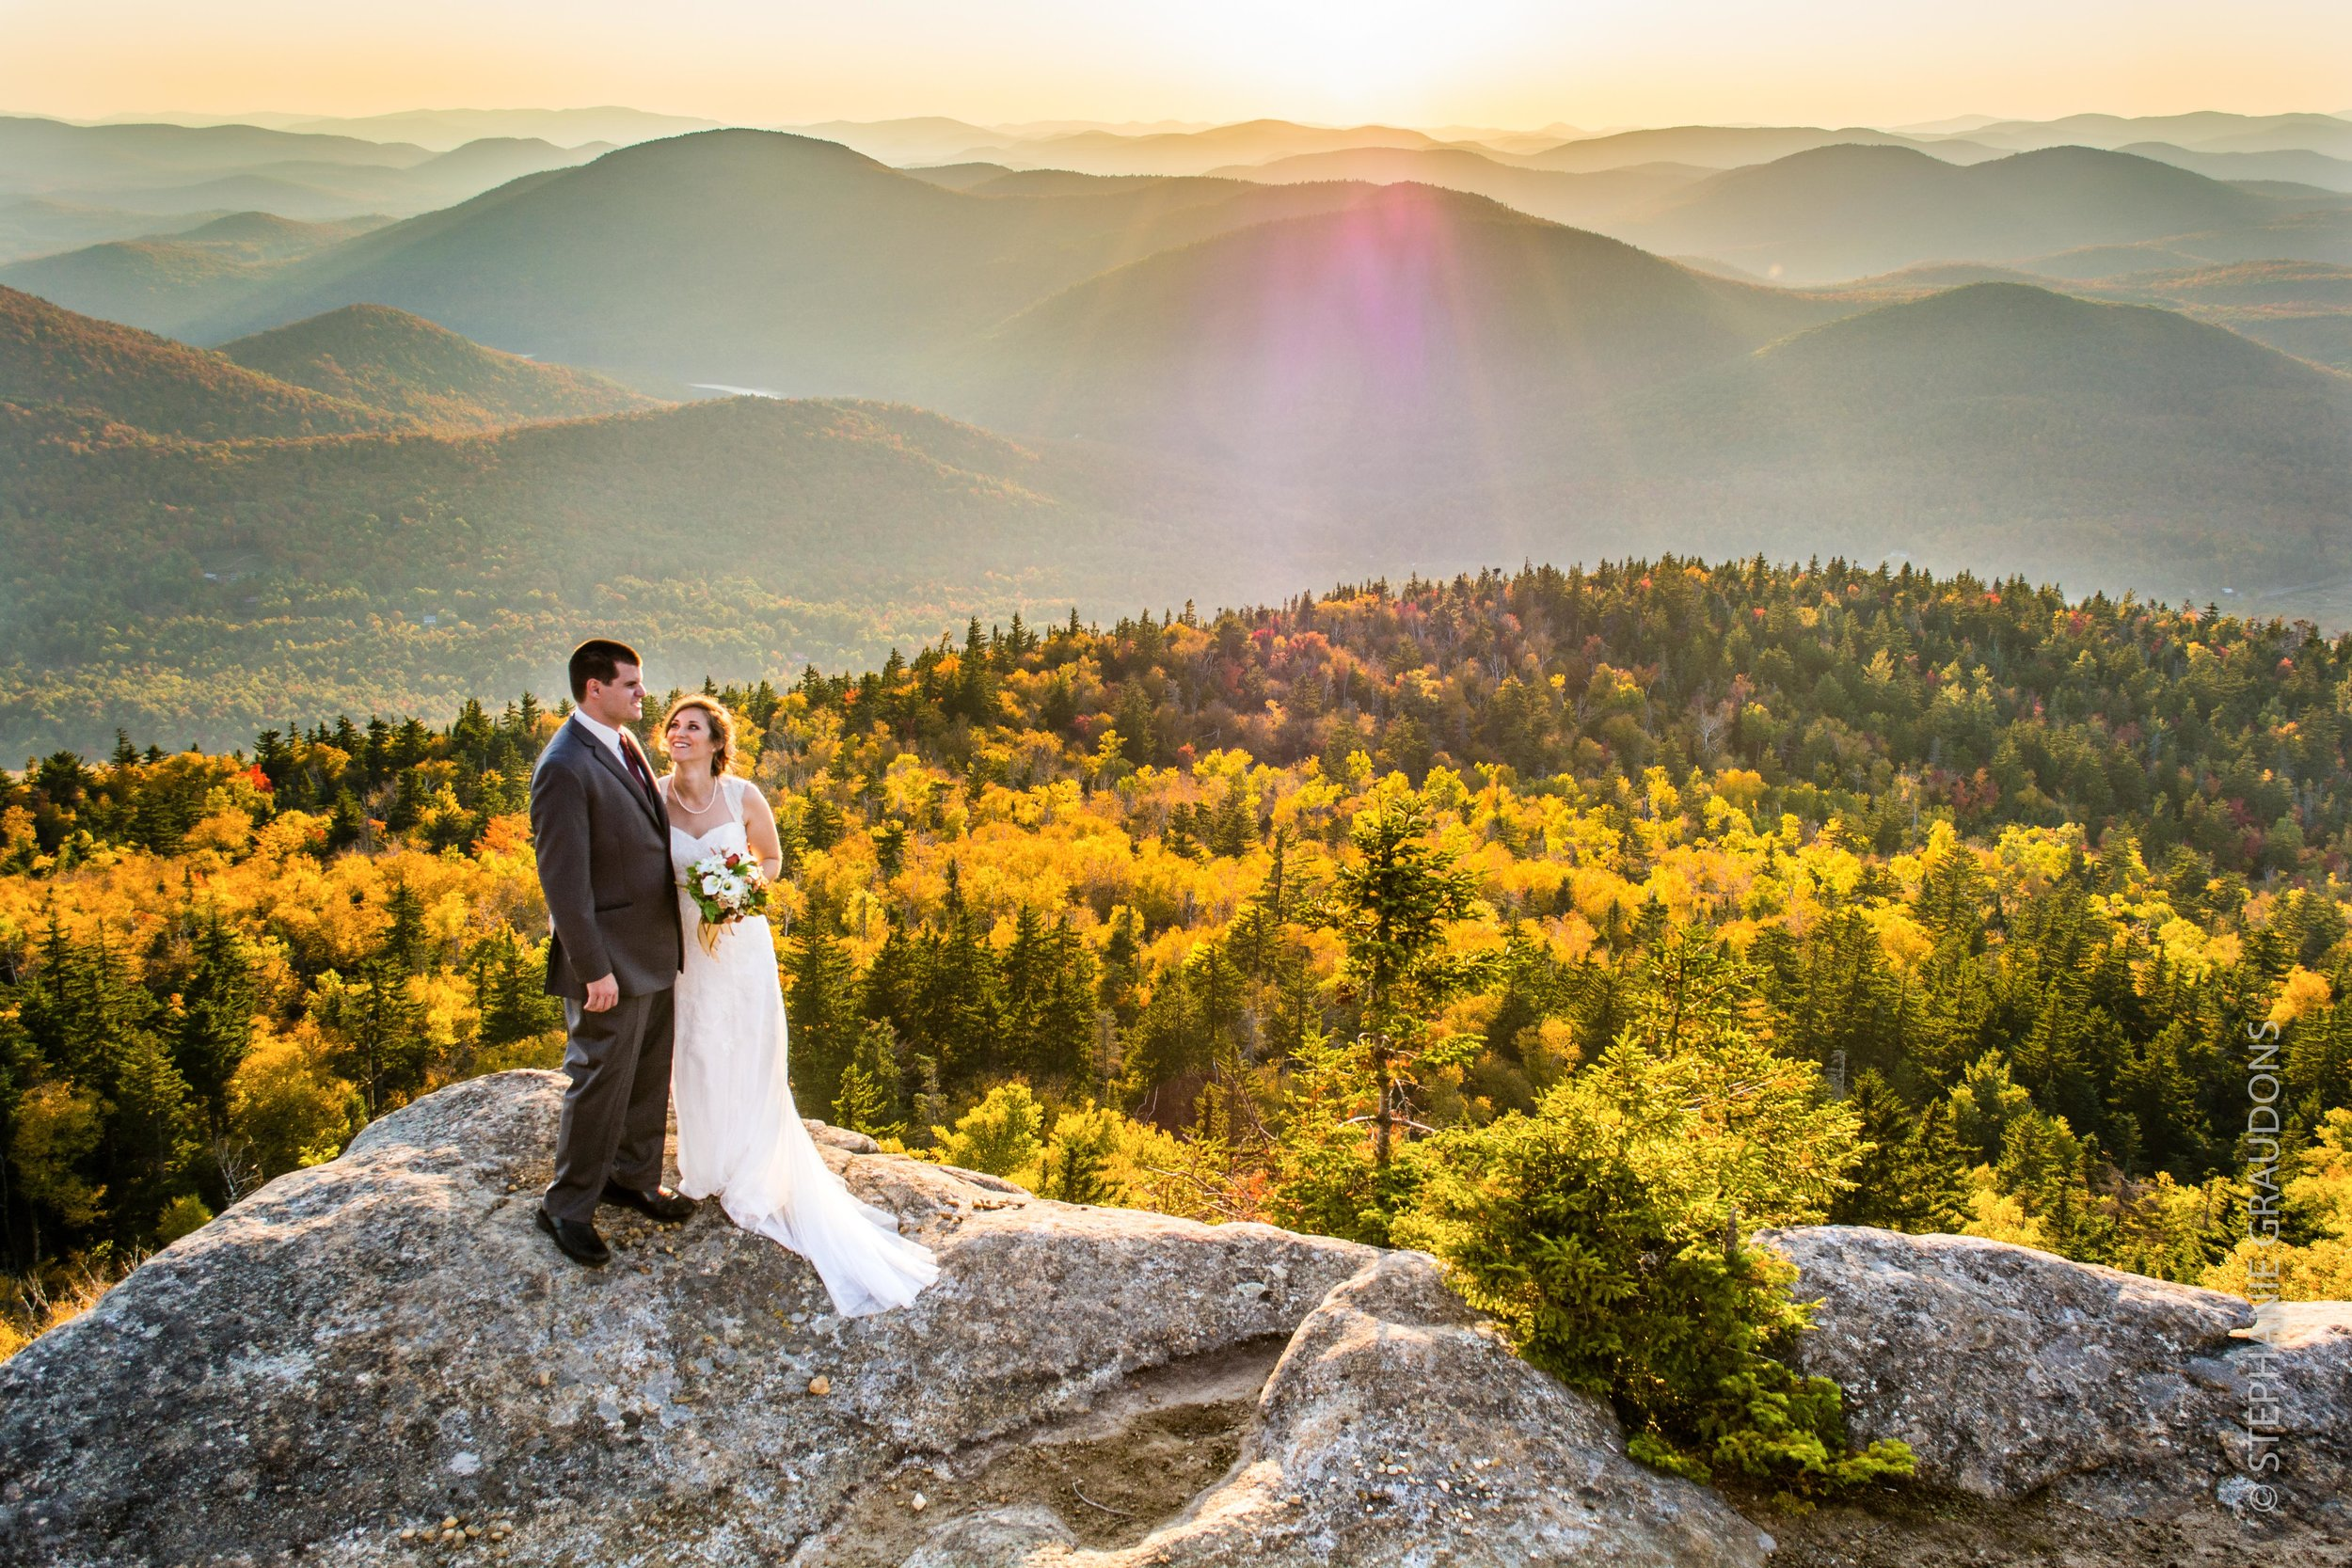 Allie Wedding Sunset Mtns WB.jpg